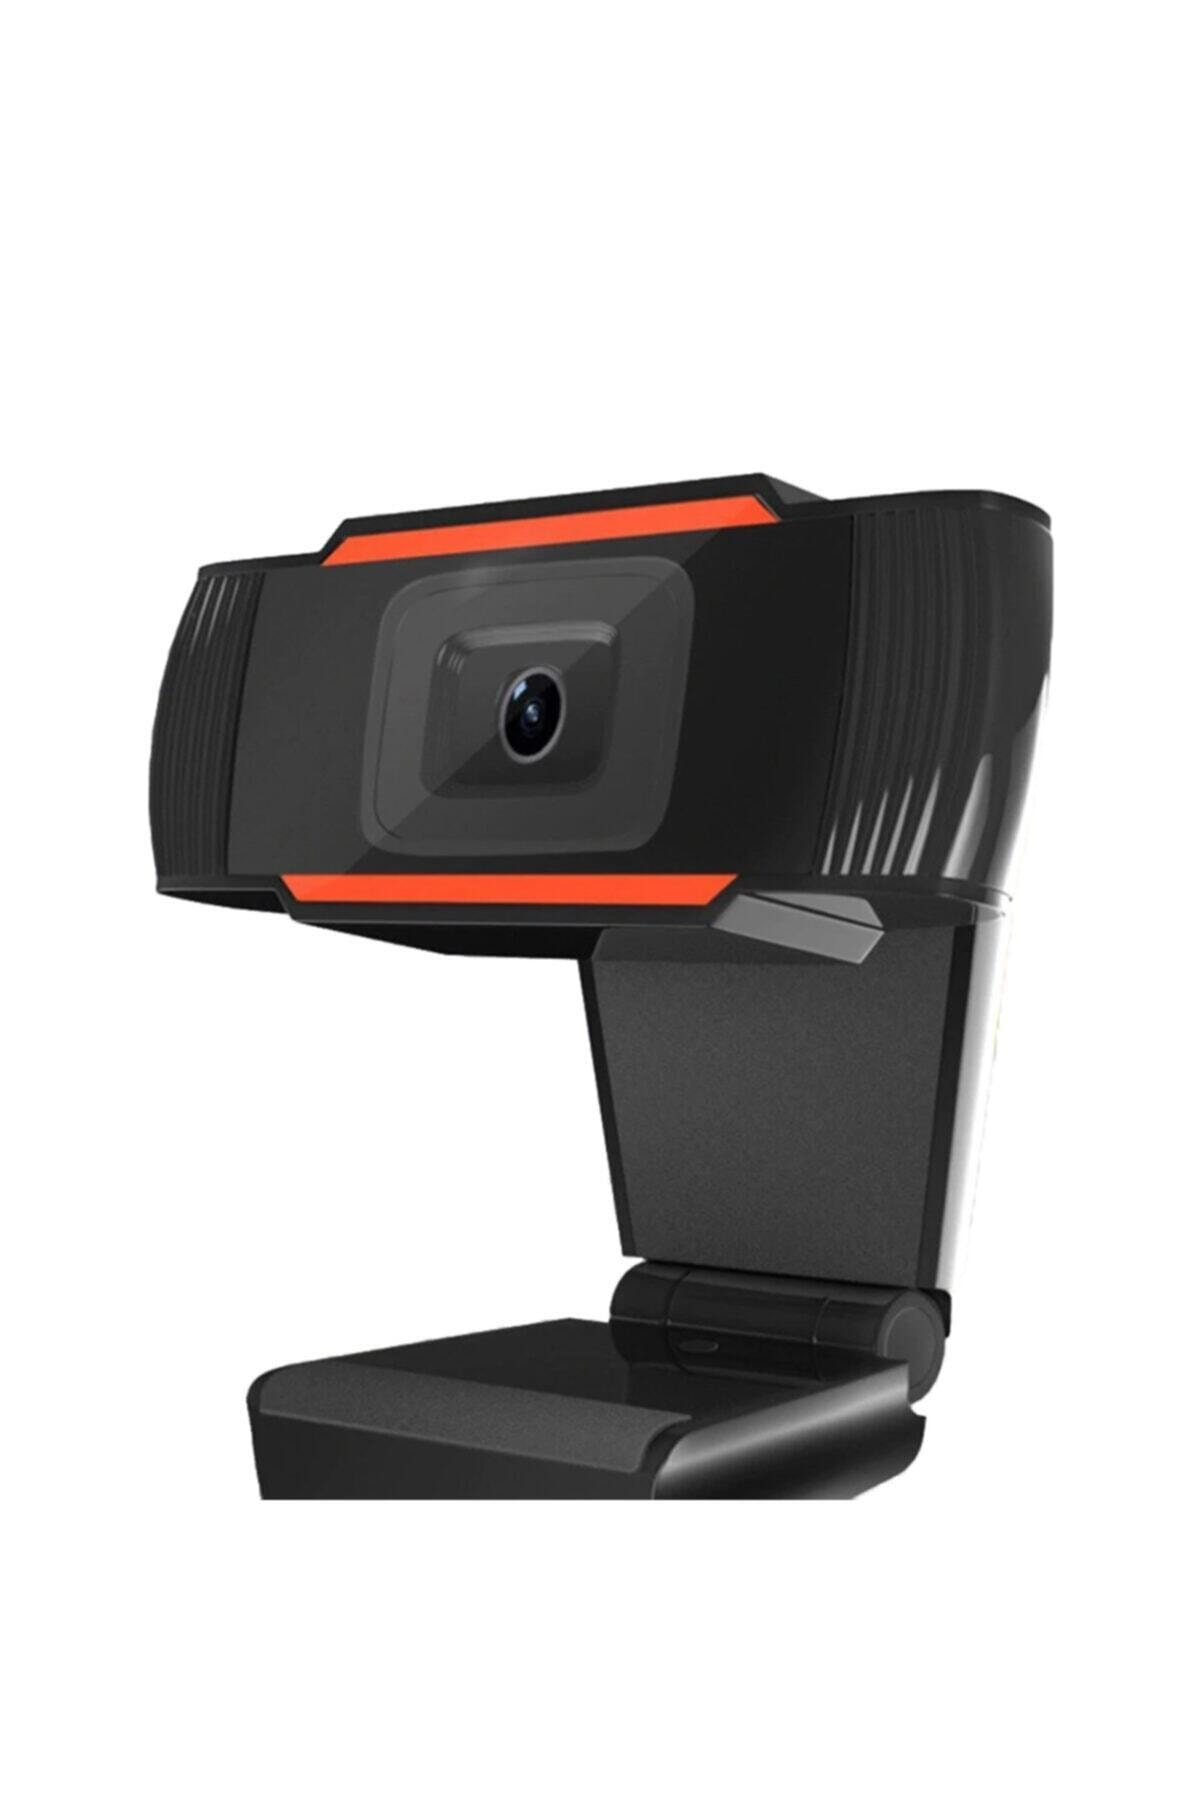 Microcase Mikrofonlu Full Hd Webcam Kamera 1080p 30 Fps Al2542 2